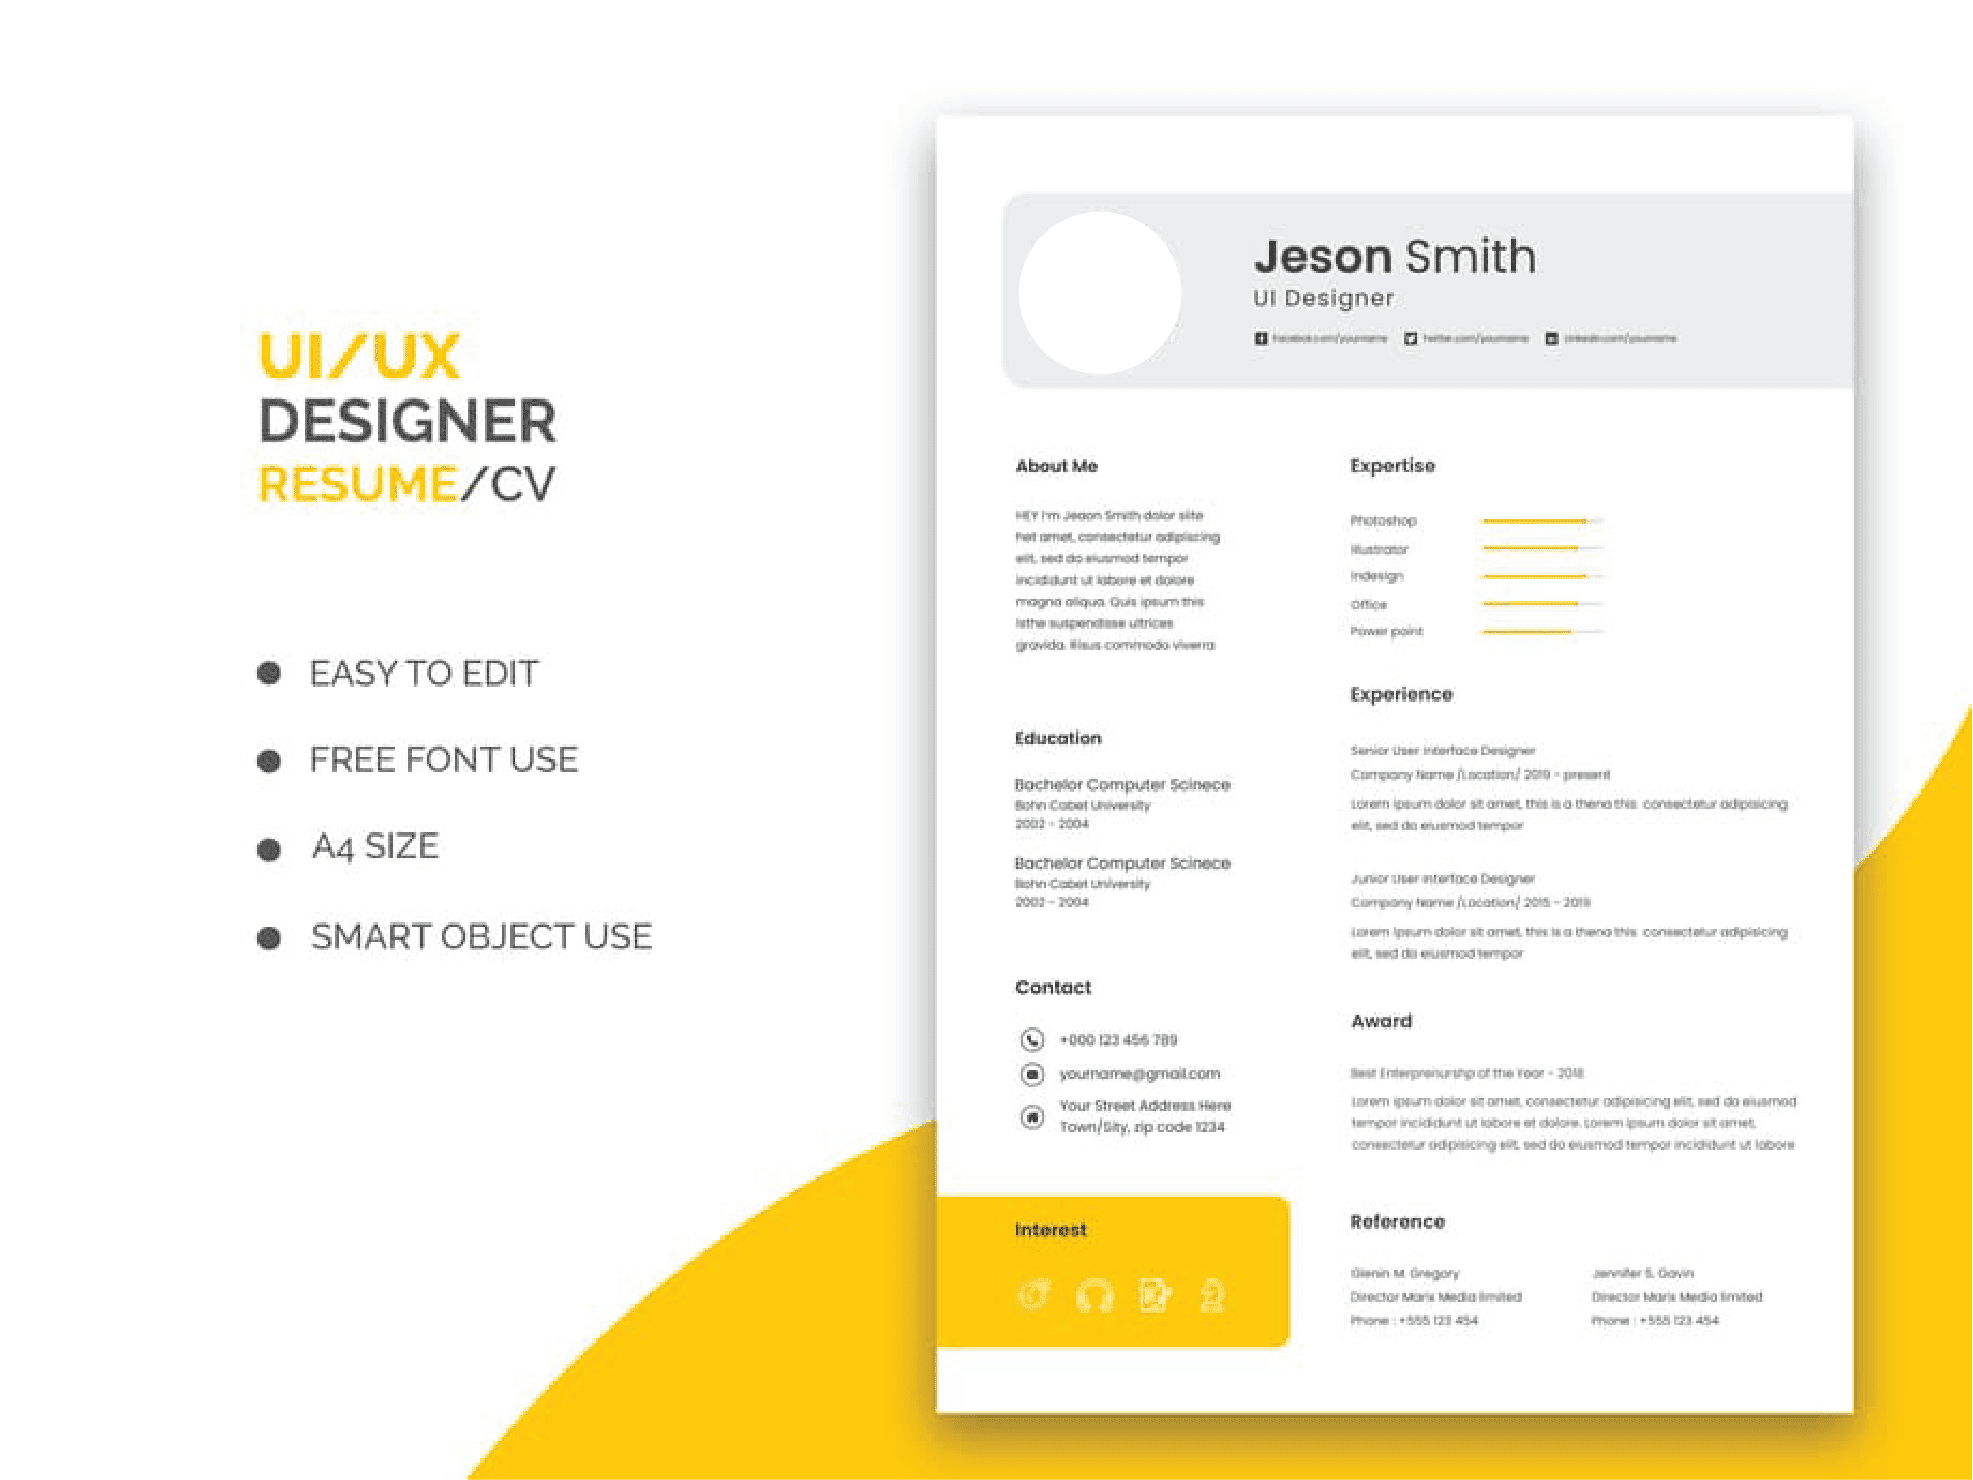 An effective resume has a clear section for experience, skills, contact and reference information.